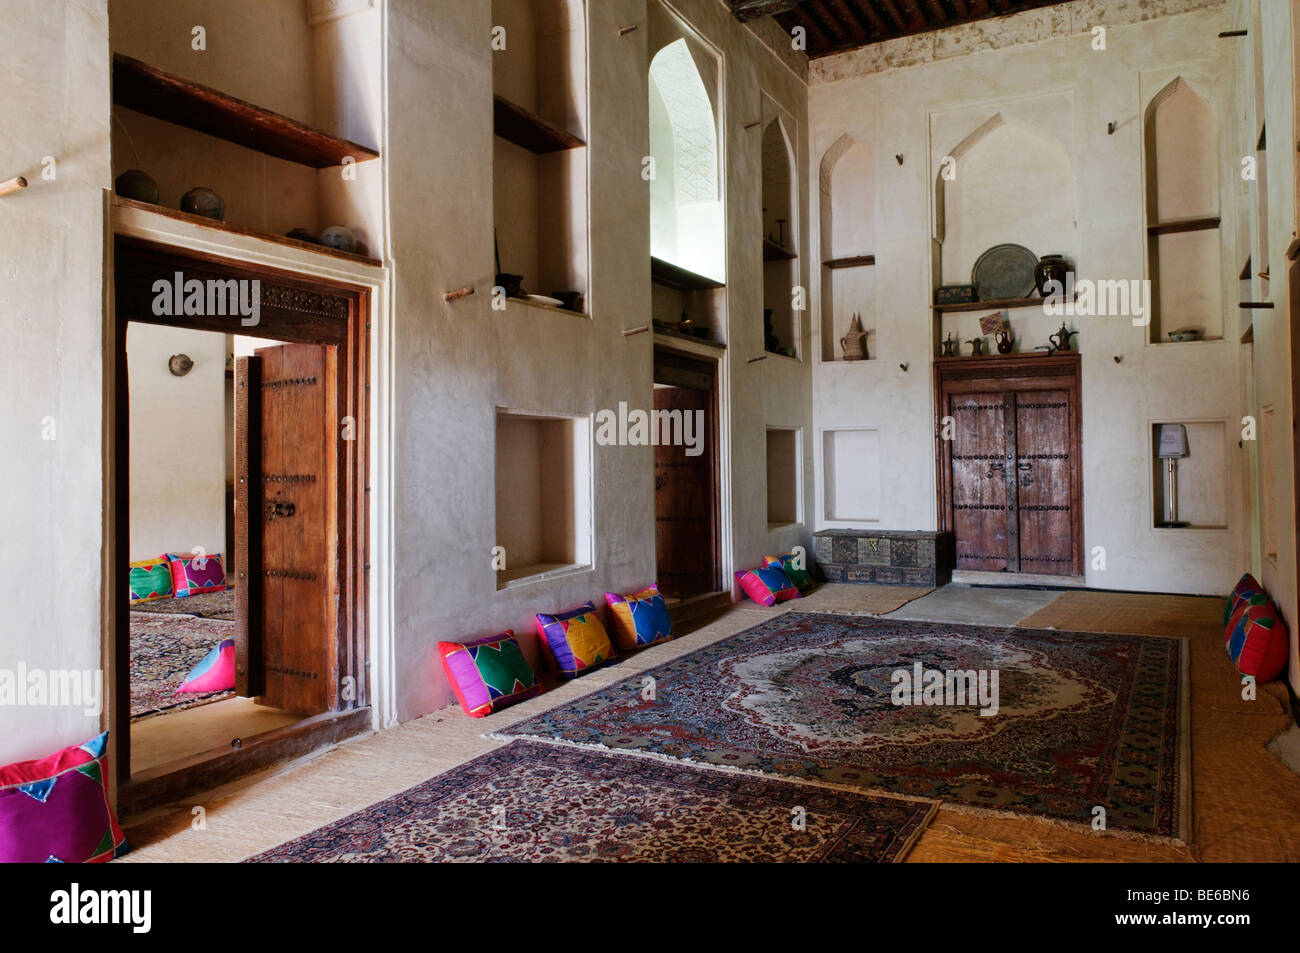 arabian castle stock photos & arabian castle stock images - alamy